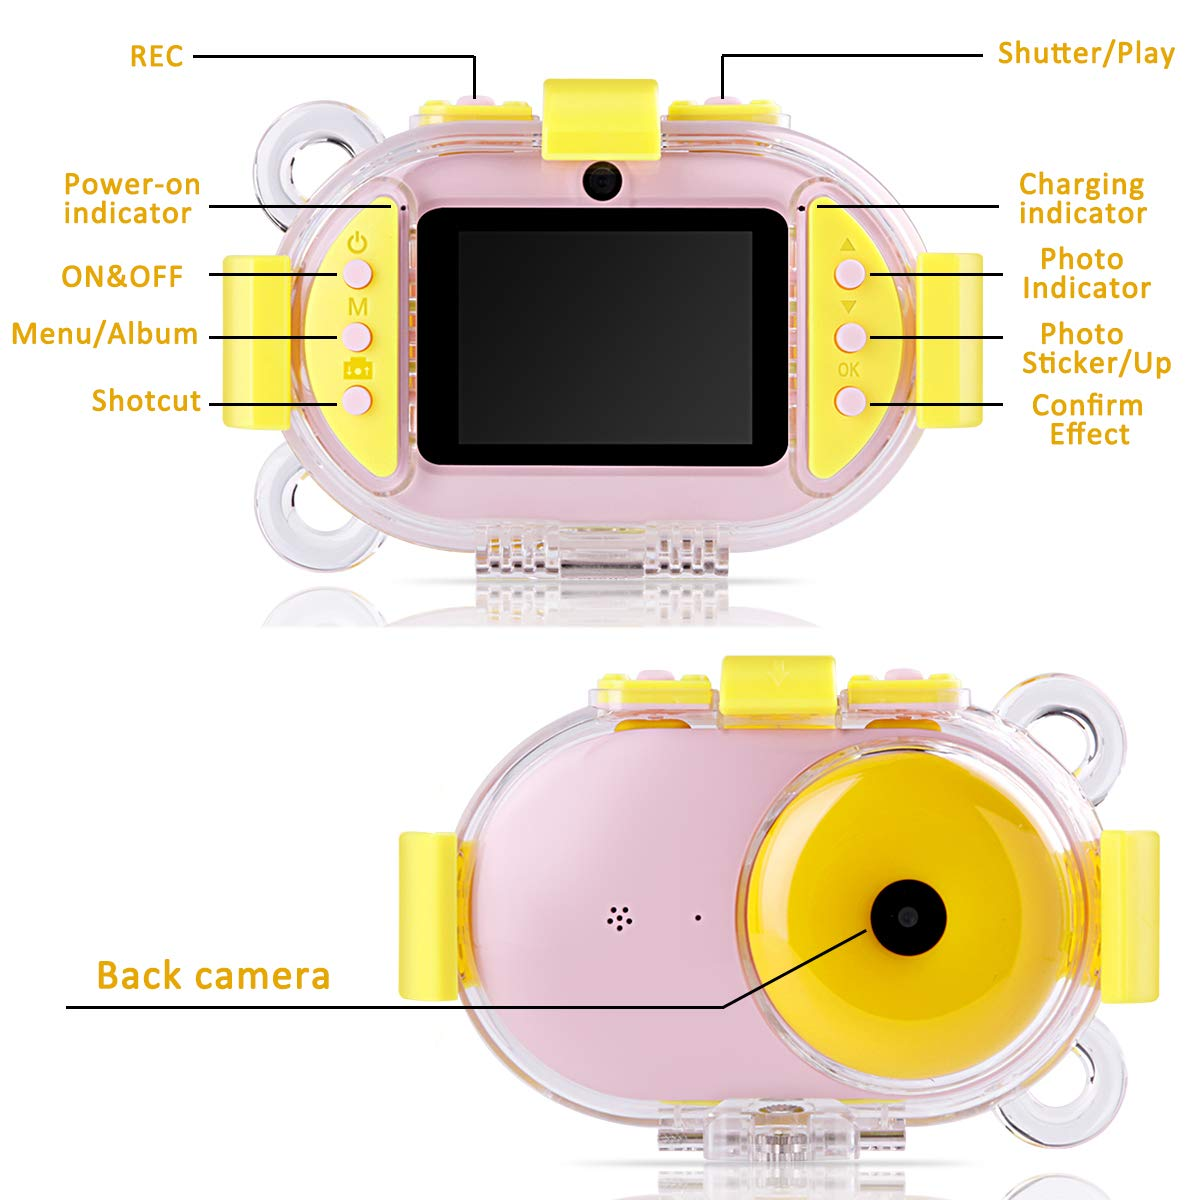 Kids Camera, OPOLEMIN Kids Waterproof Camera Kids Video Camera with Sound Playback Underwater Digital Camera Camcorderfor Kids with 16G Memory Card for Children's Day Birthday Trip Beach Swimming by OPOLEMIN (Image #2)